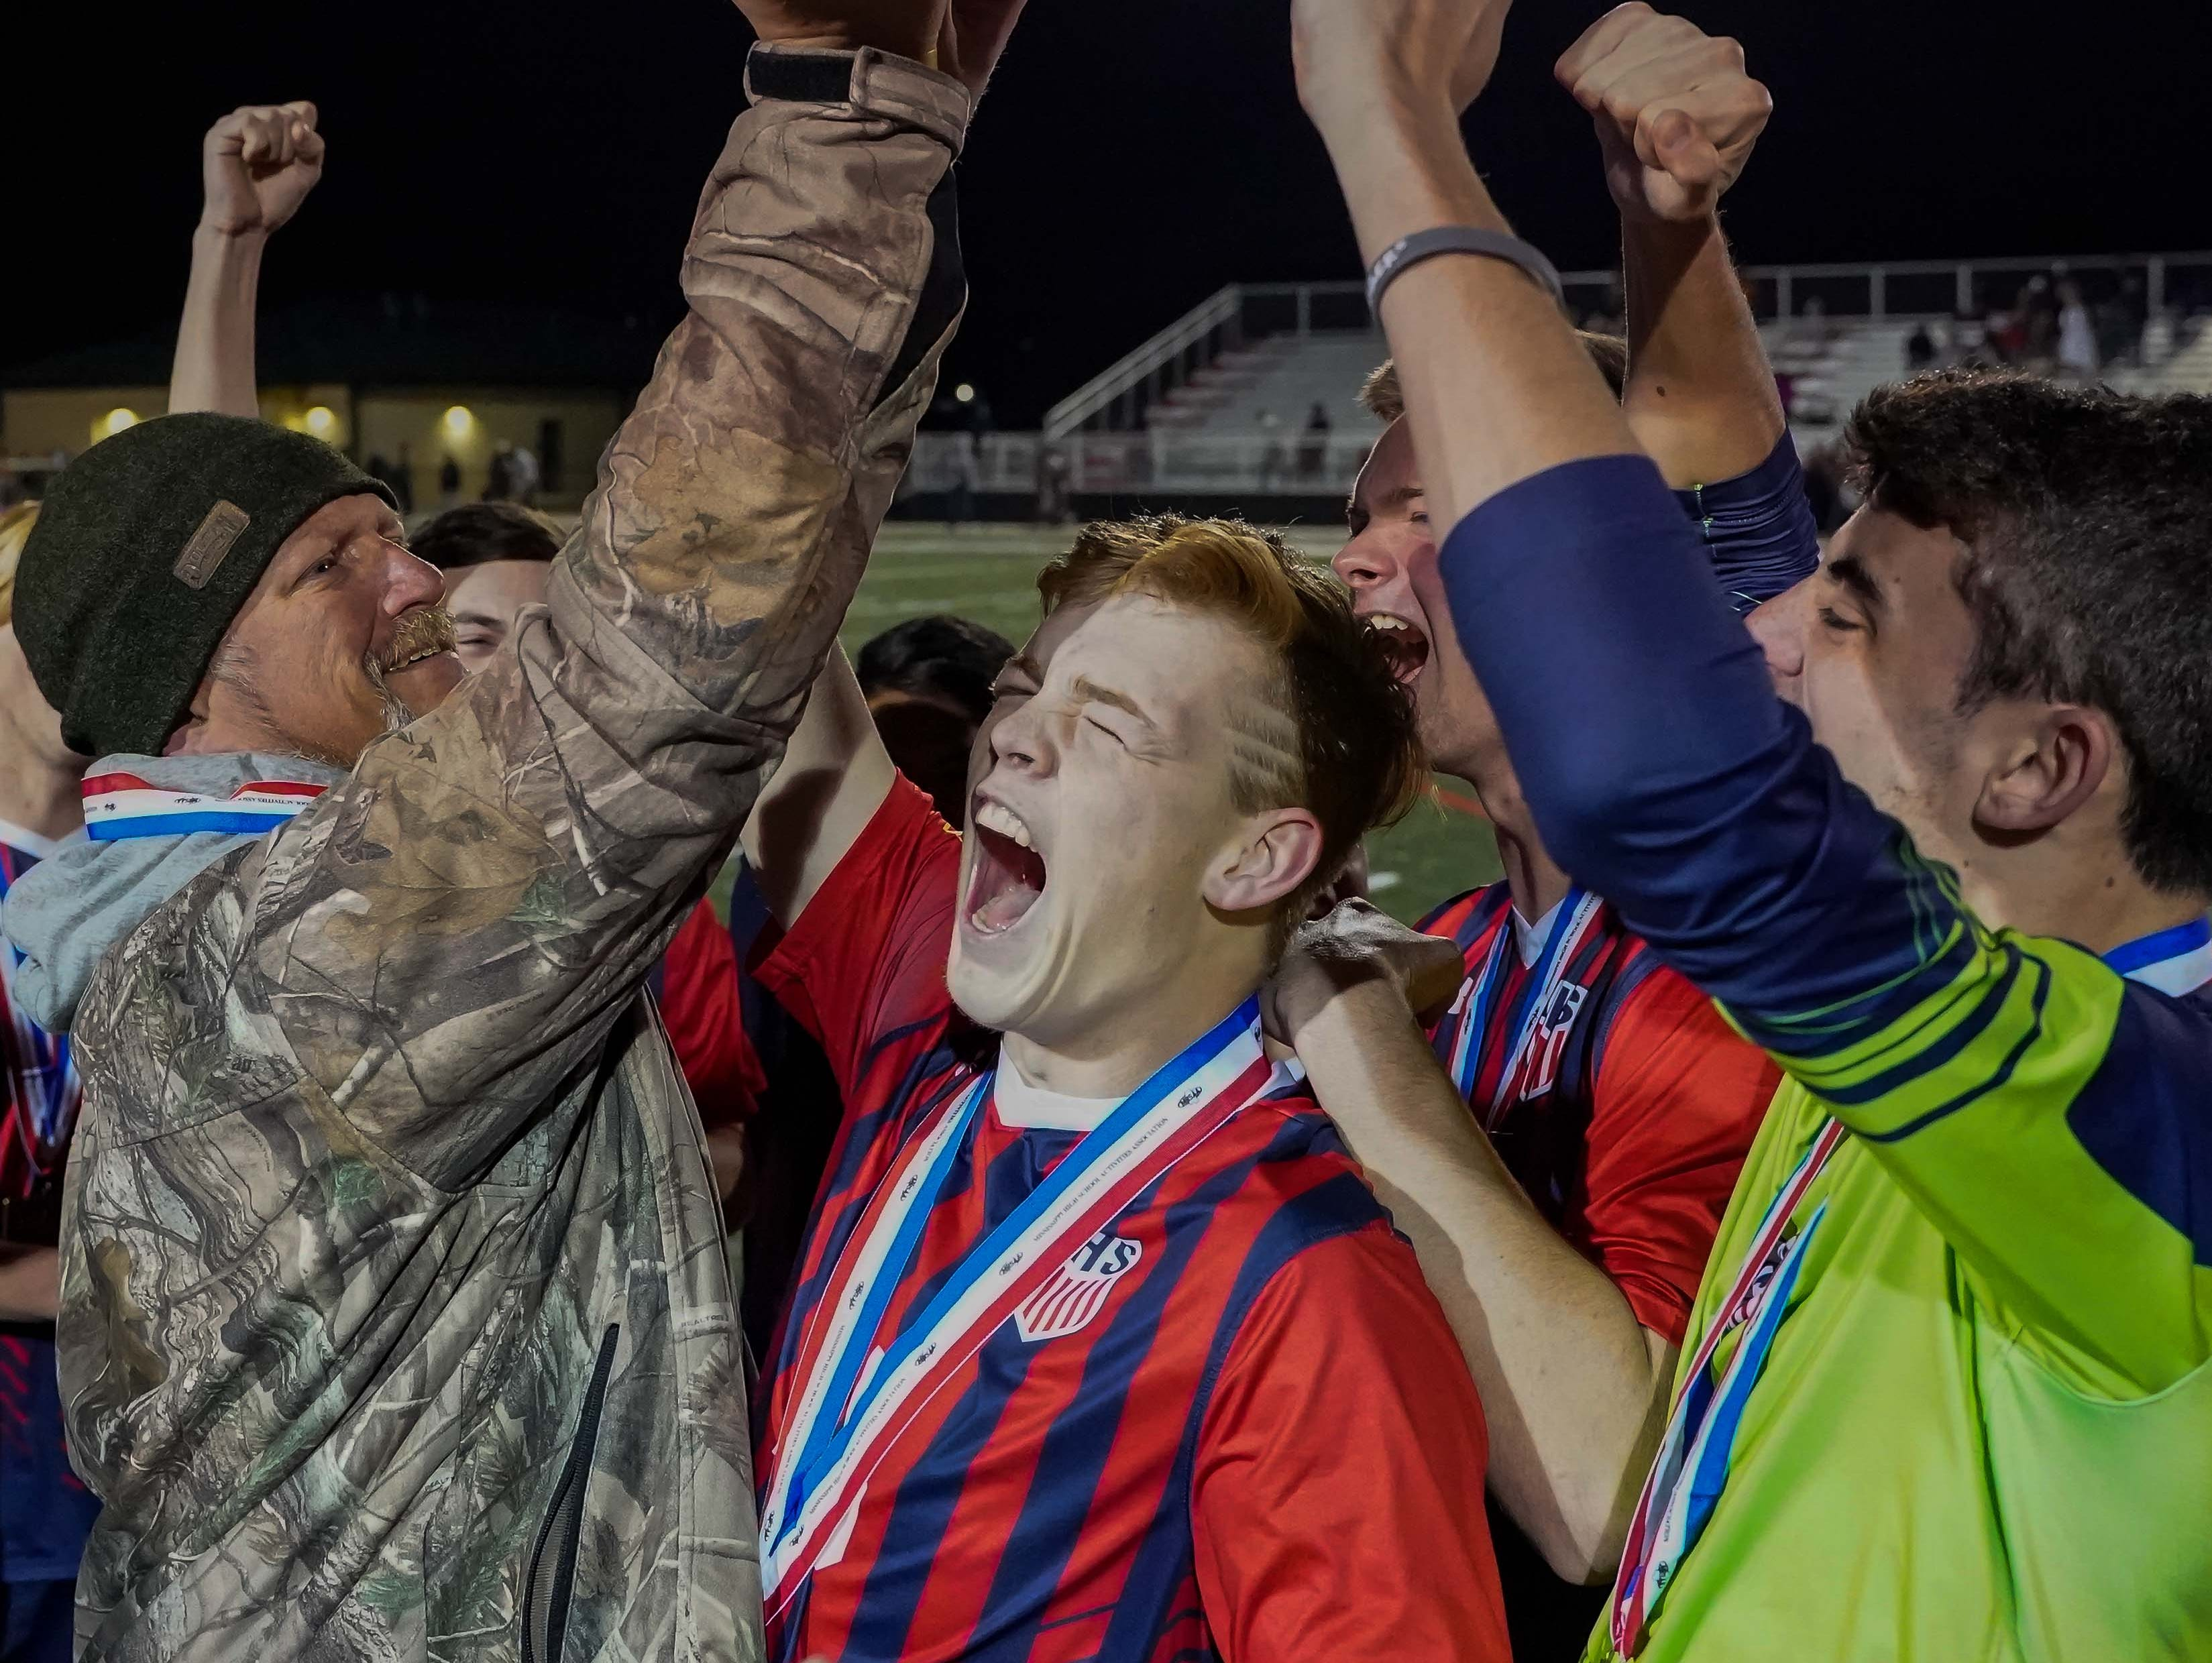 Lewisburg coach Harl Roehm hoists the trophy with his players following the Patriots 2-1 win against Long Beach during the MHSAA 5A Boys Soccer Championships held at Brandon High School in Brandon, MS, Saturday February 9, 2019.(Bob Smith-For The Clarion Ledger)